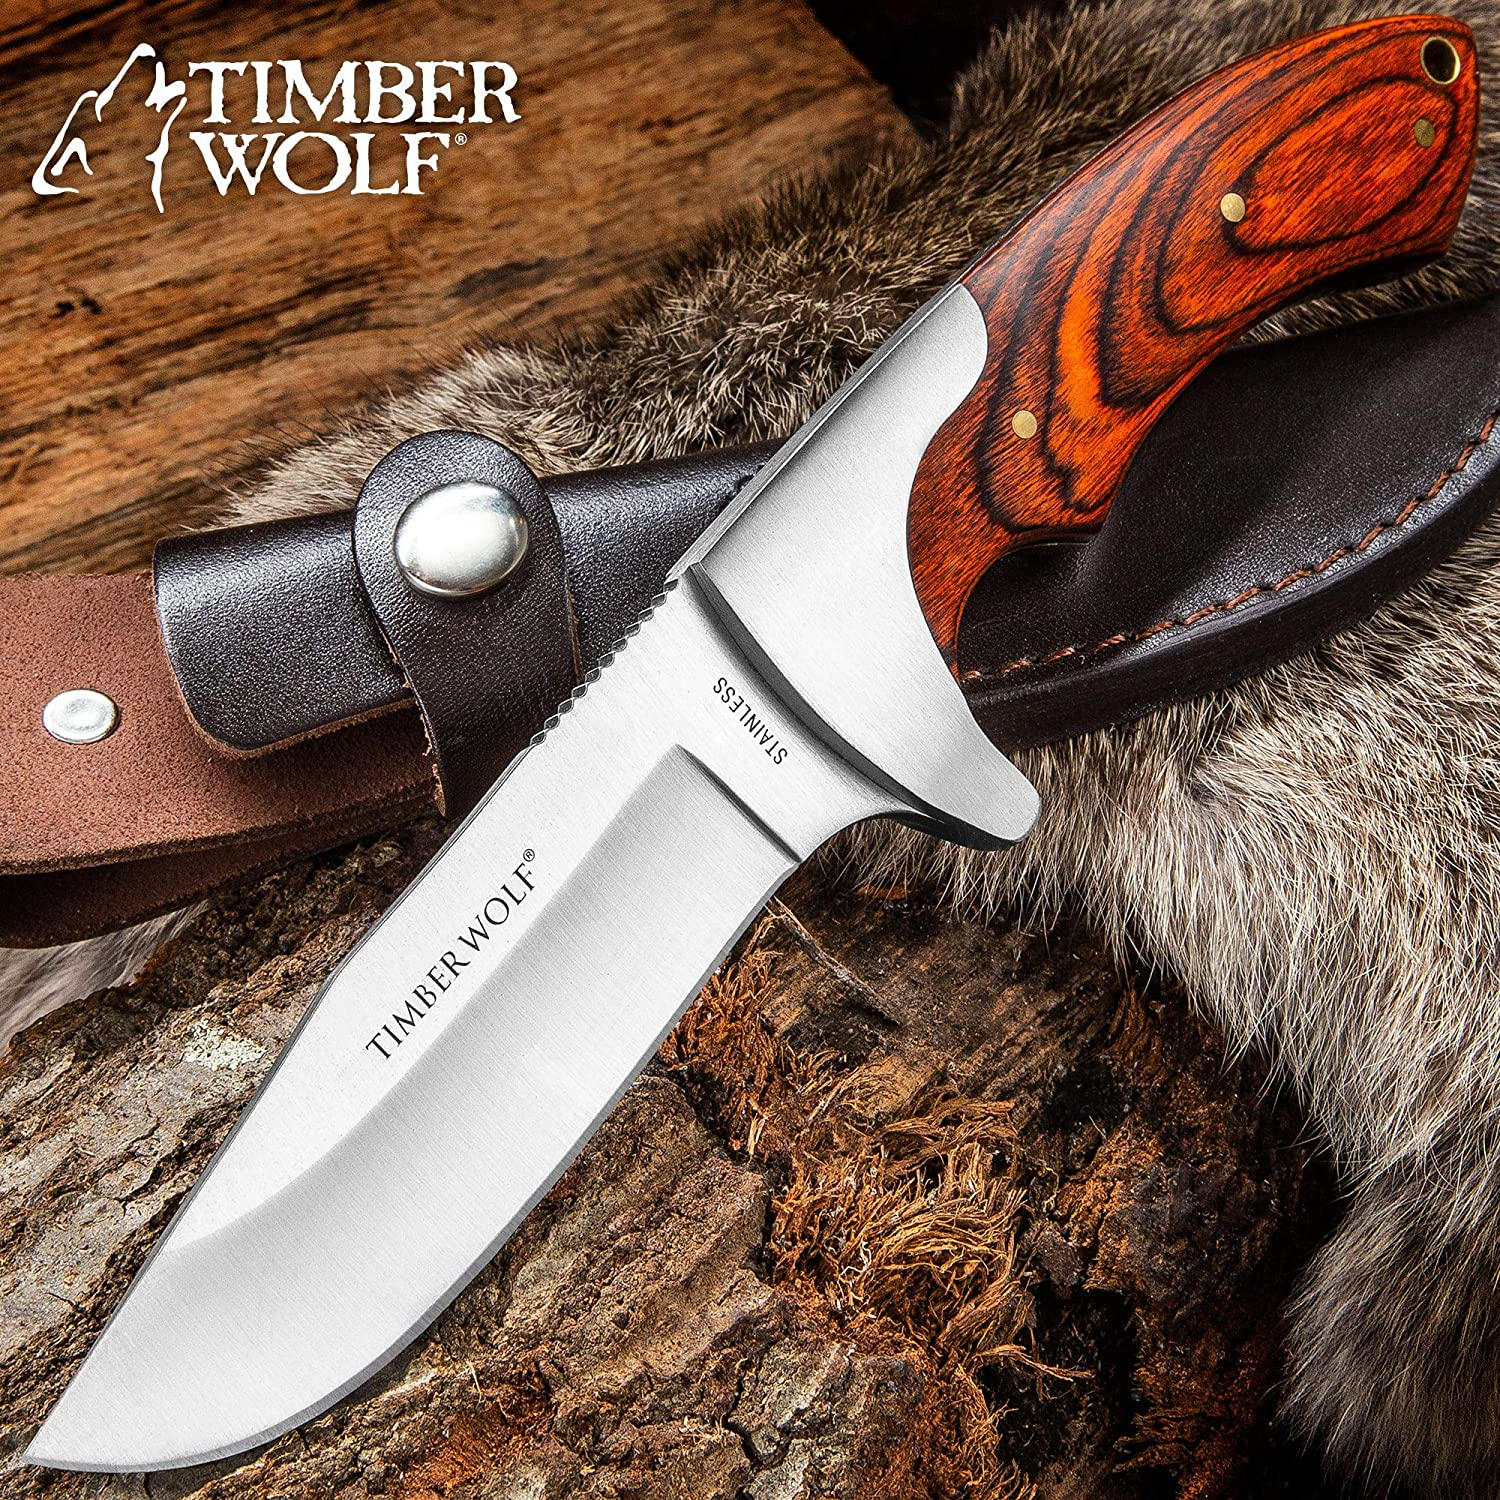 Amazon.com: Timber Wolf Blazin Bowie Knife: Industrial ...